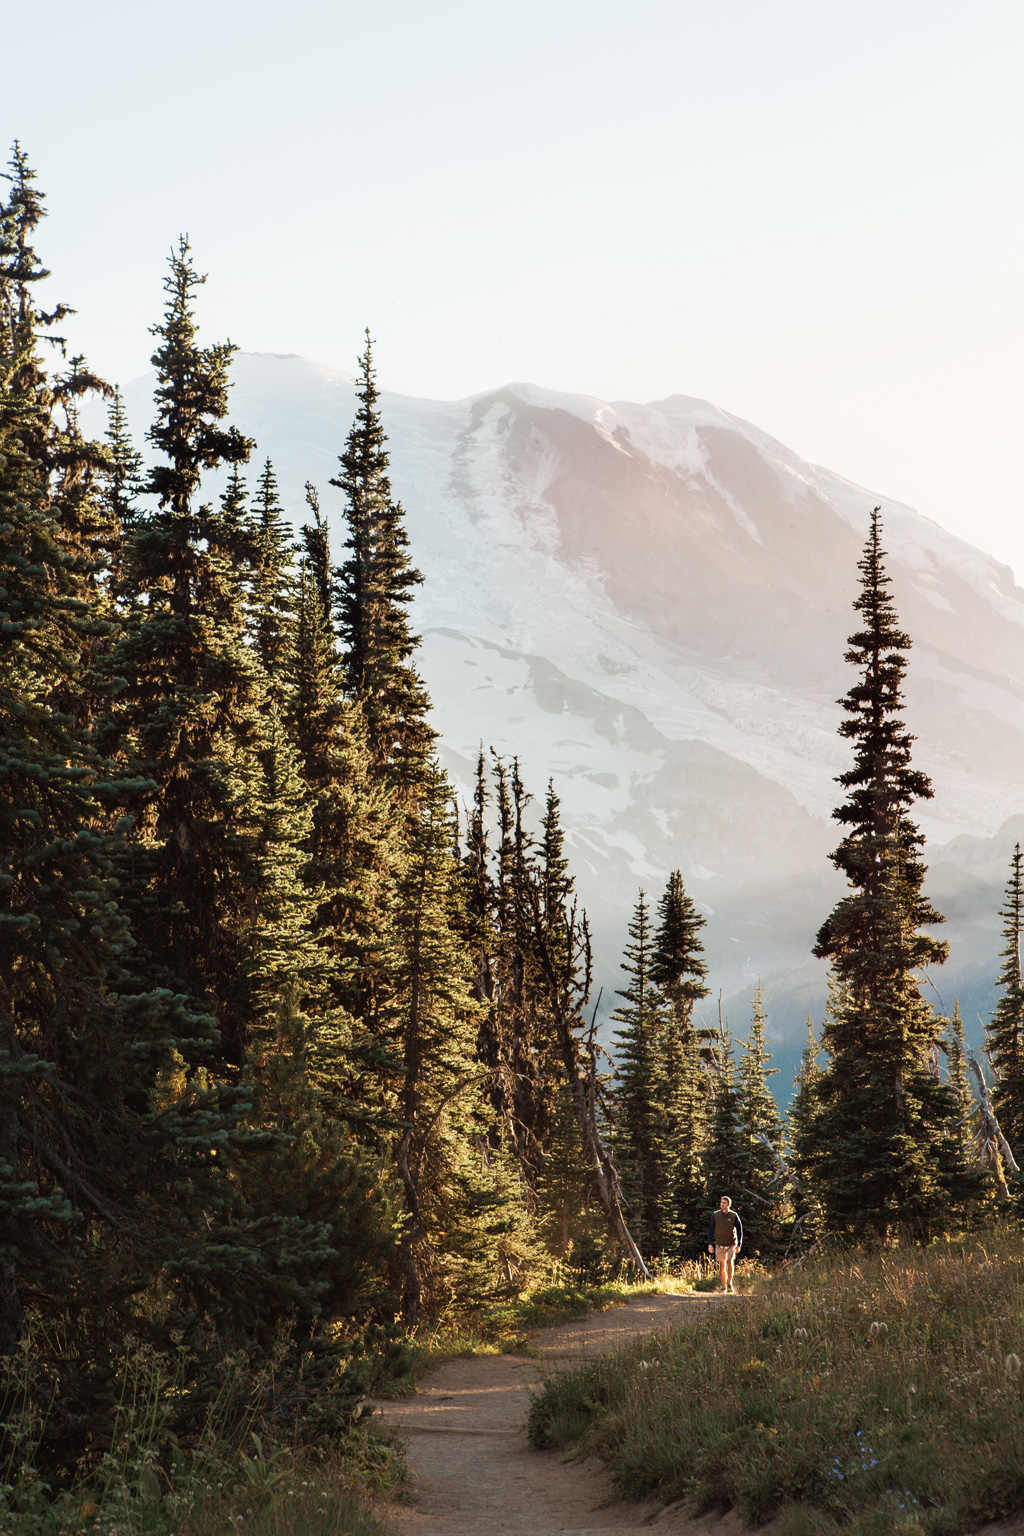 CindyGiovagnoli_Mount_Rainier_National_Park_Washington-012.jpg